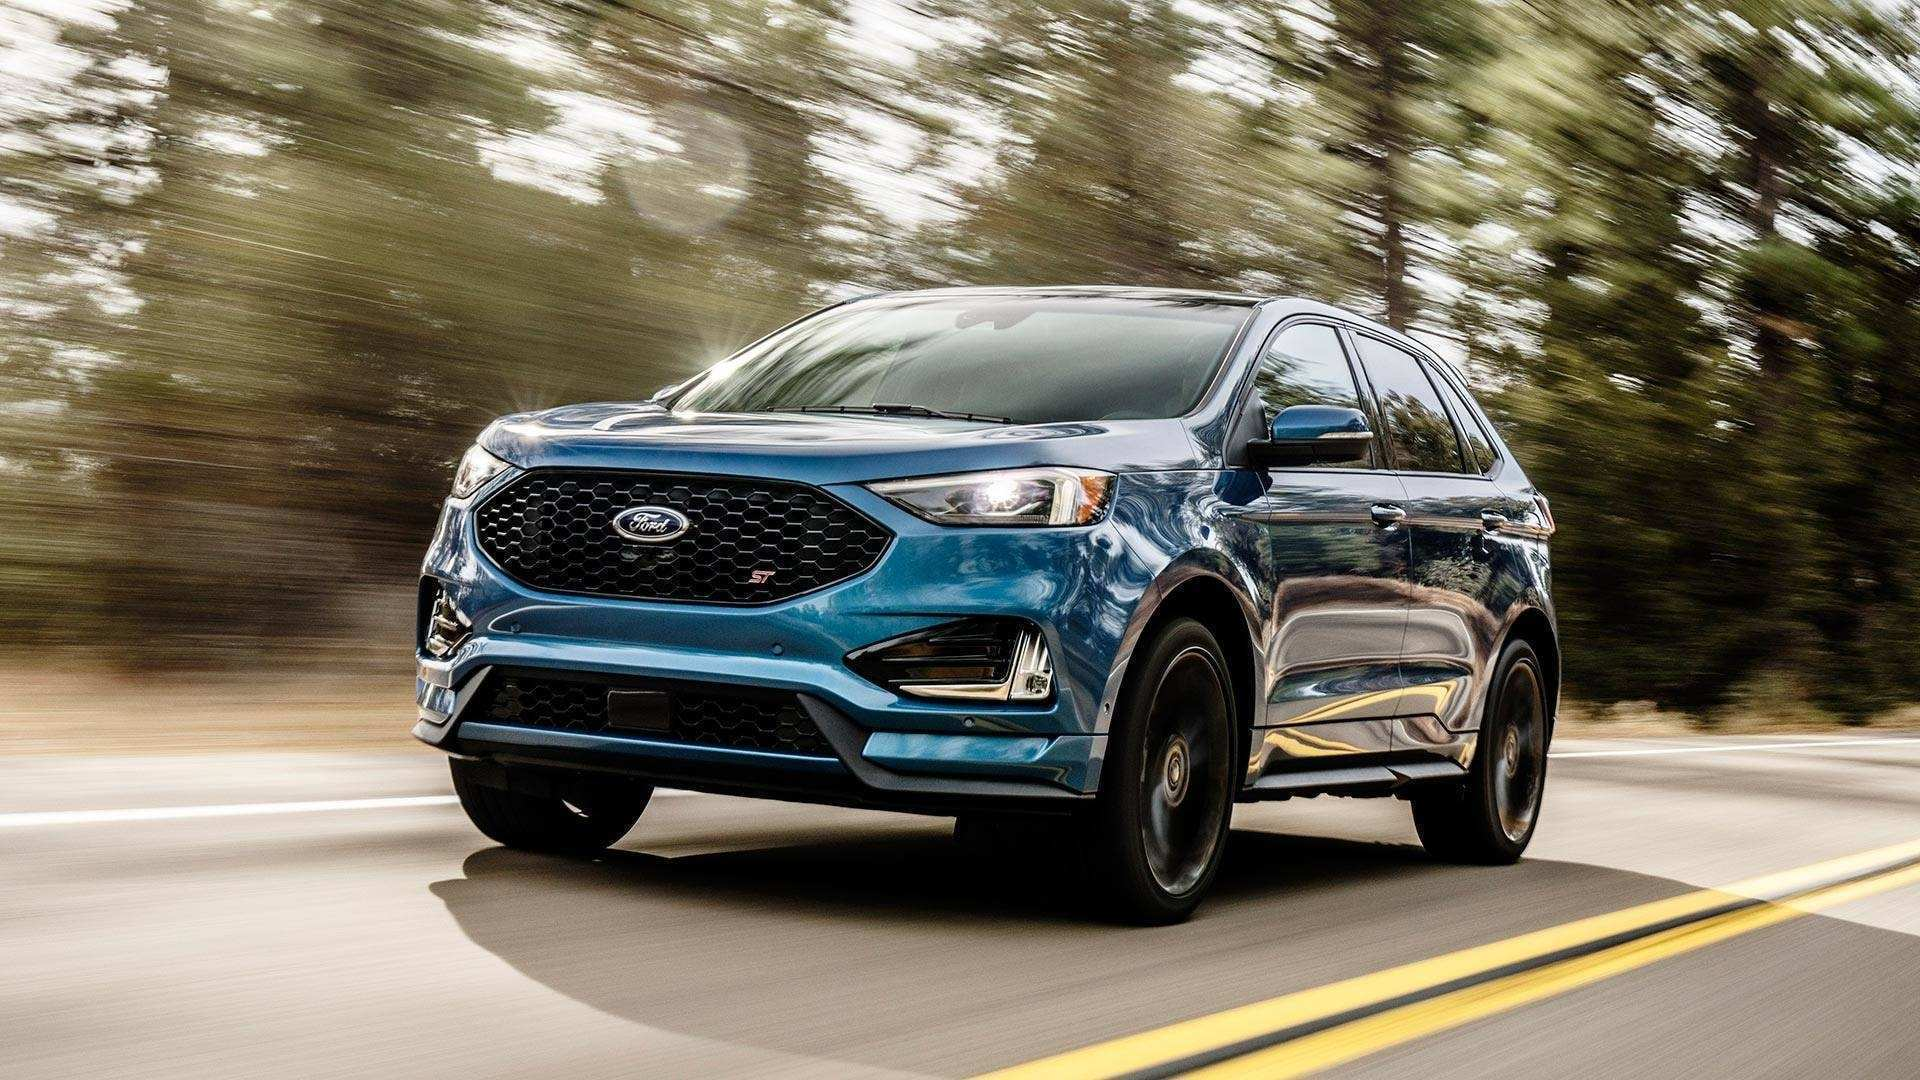 16 Best Review 2019 Ford 2 3 Ecoboost Reviews with 2019 Ford 2 3 Ecoboost